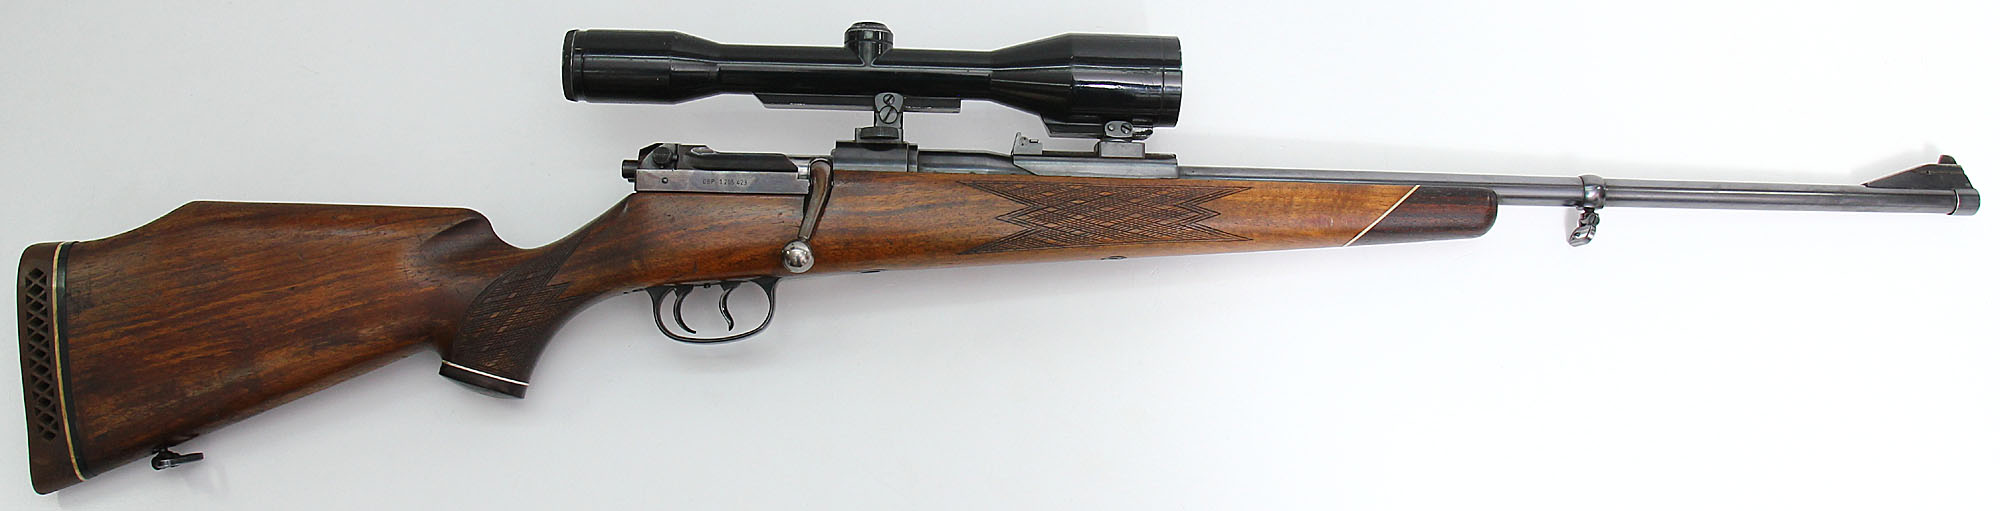 A classic Mauser 66 rifle in 7x64 Brenneke. (Picture courtesy of waffen-faude.de)